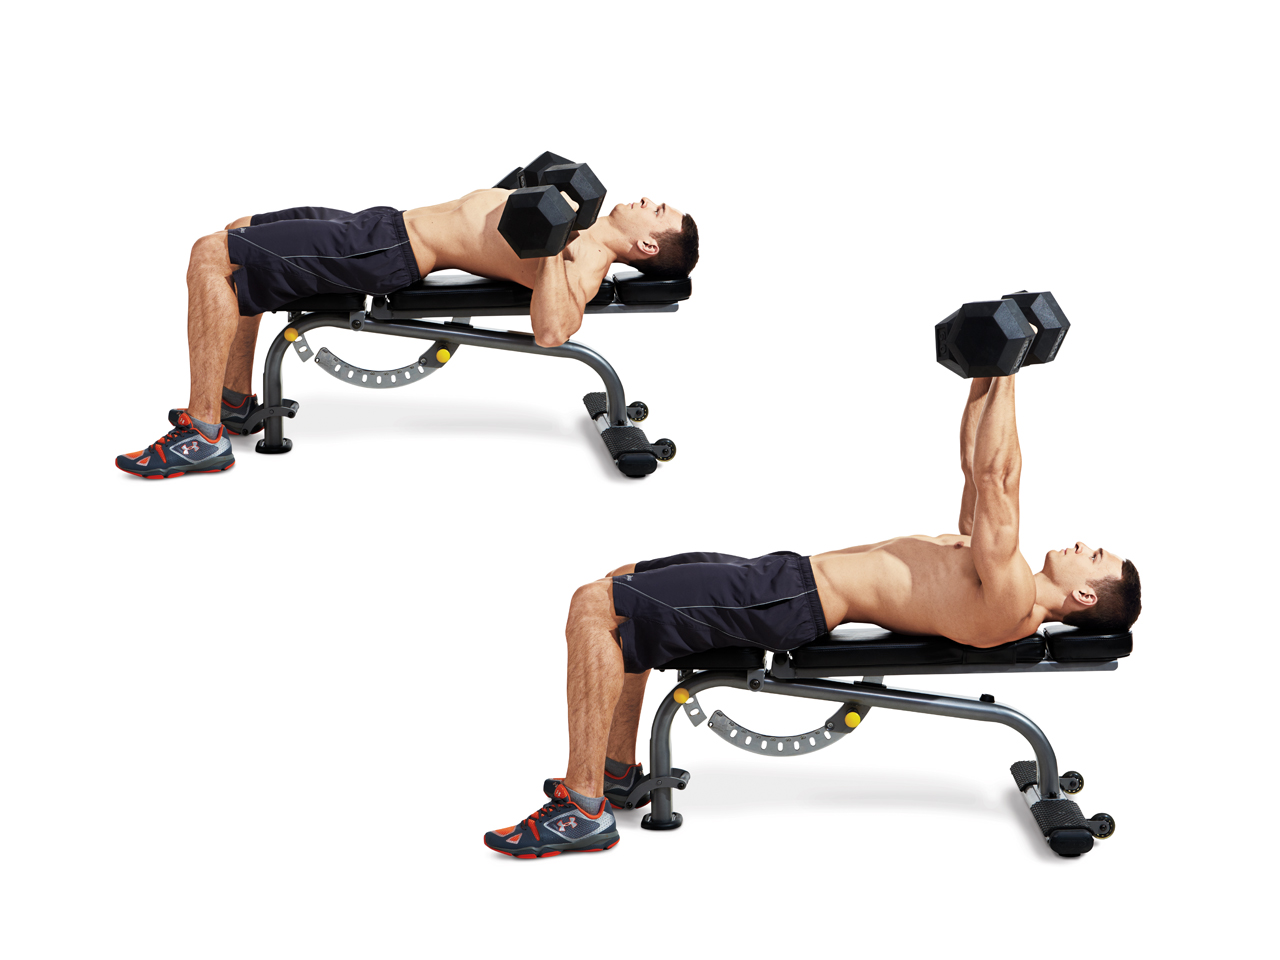 Dumbbell Bench Press Video Watch Proper Form Get Tips